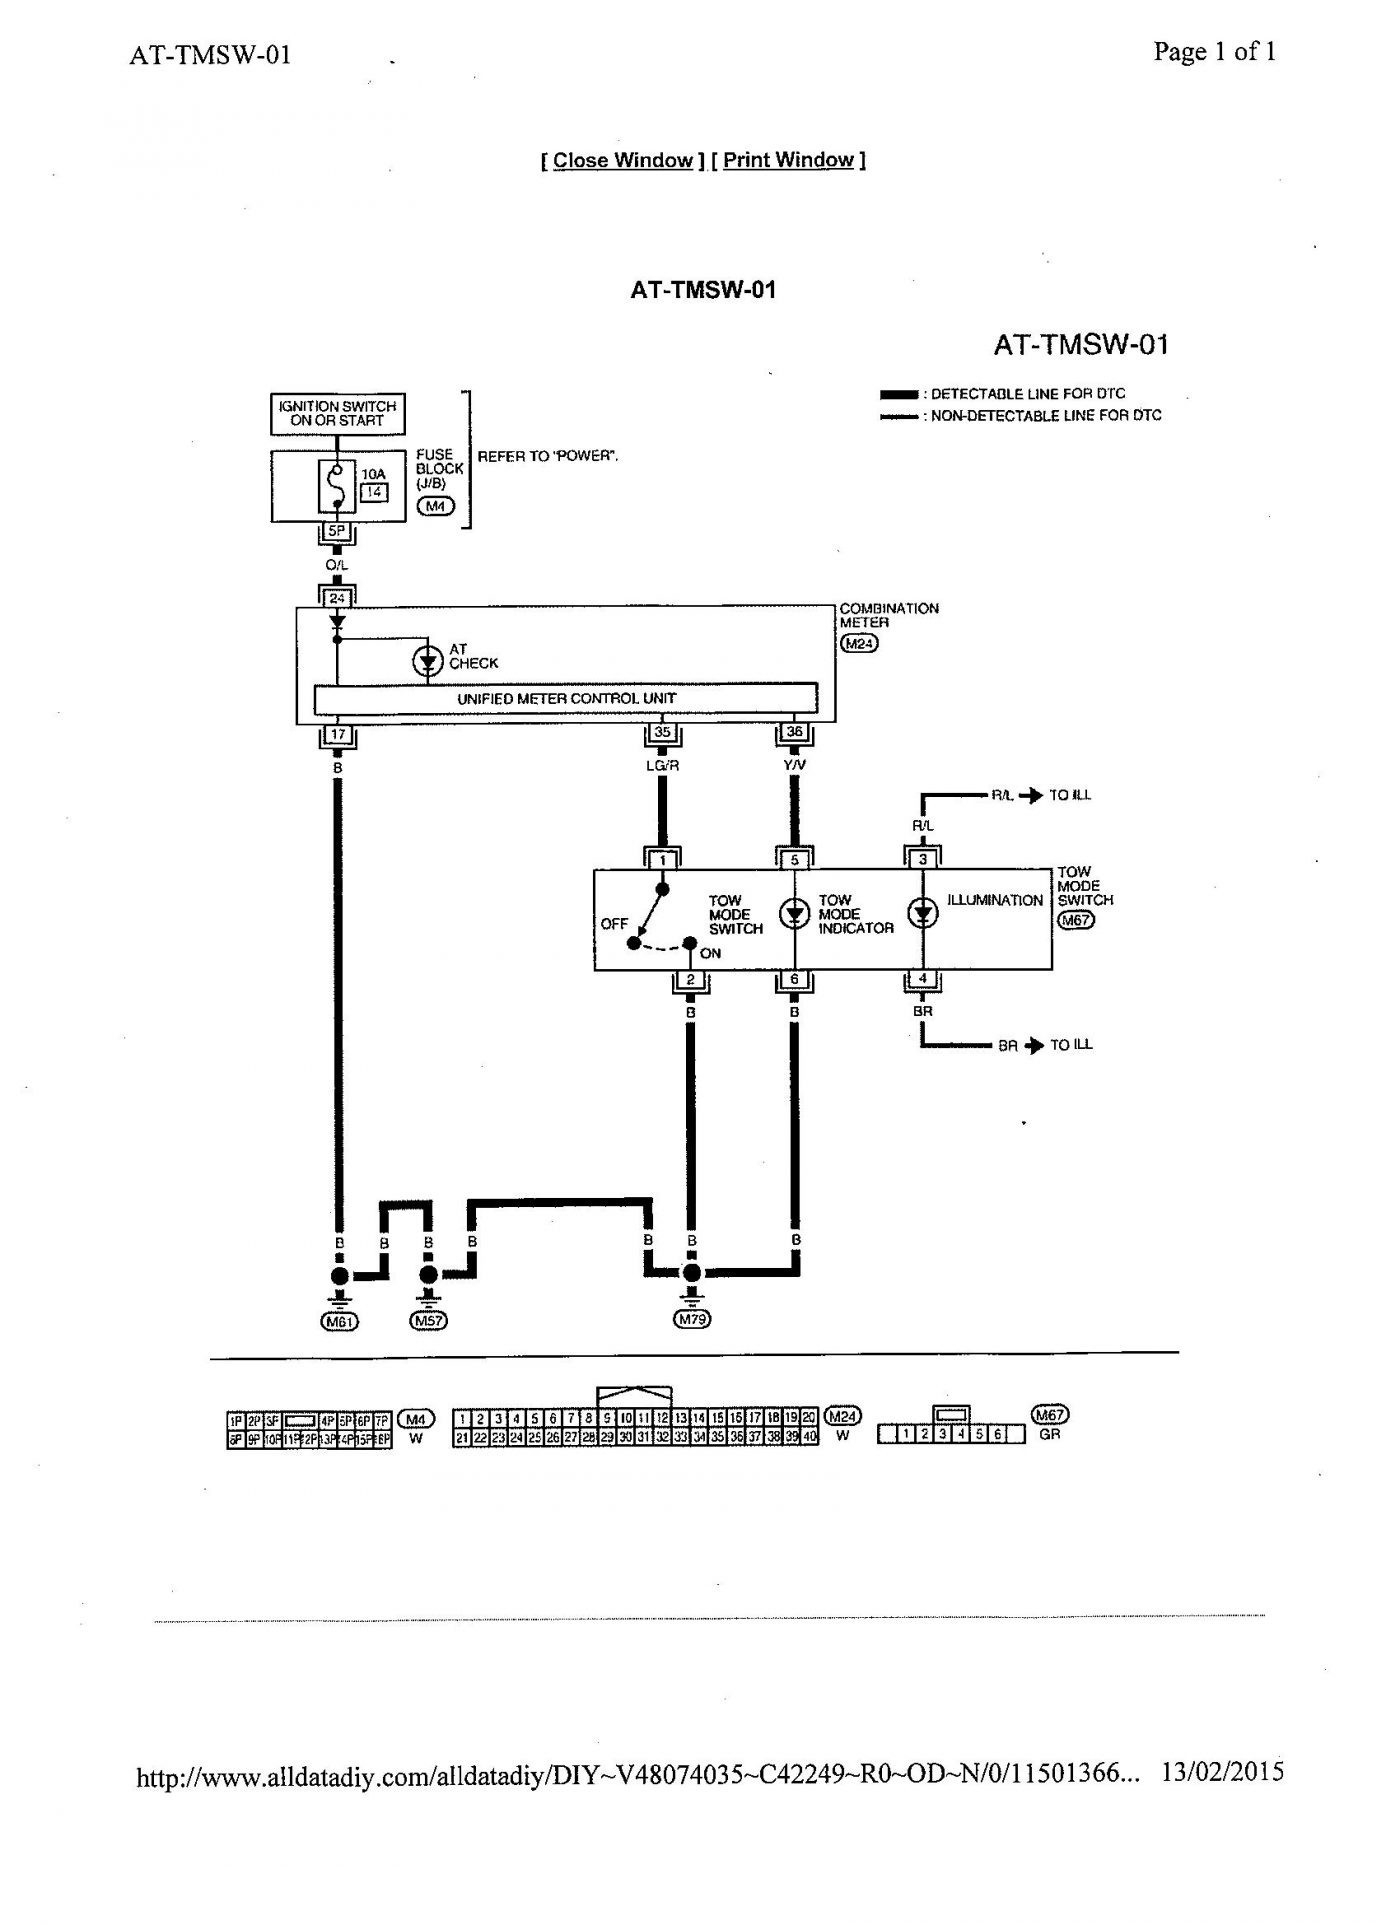 spdt toggle switch wiring diagram Collection-Dpdt Switch Wiring Diagram Guitar New Dpdt Switch Wiring Diagram Inspirational Spst Toggle Switch Wiring 6-m